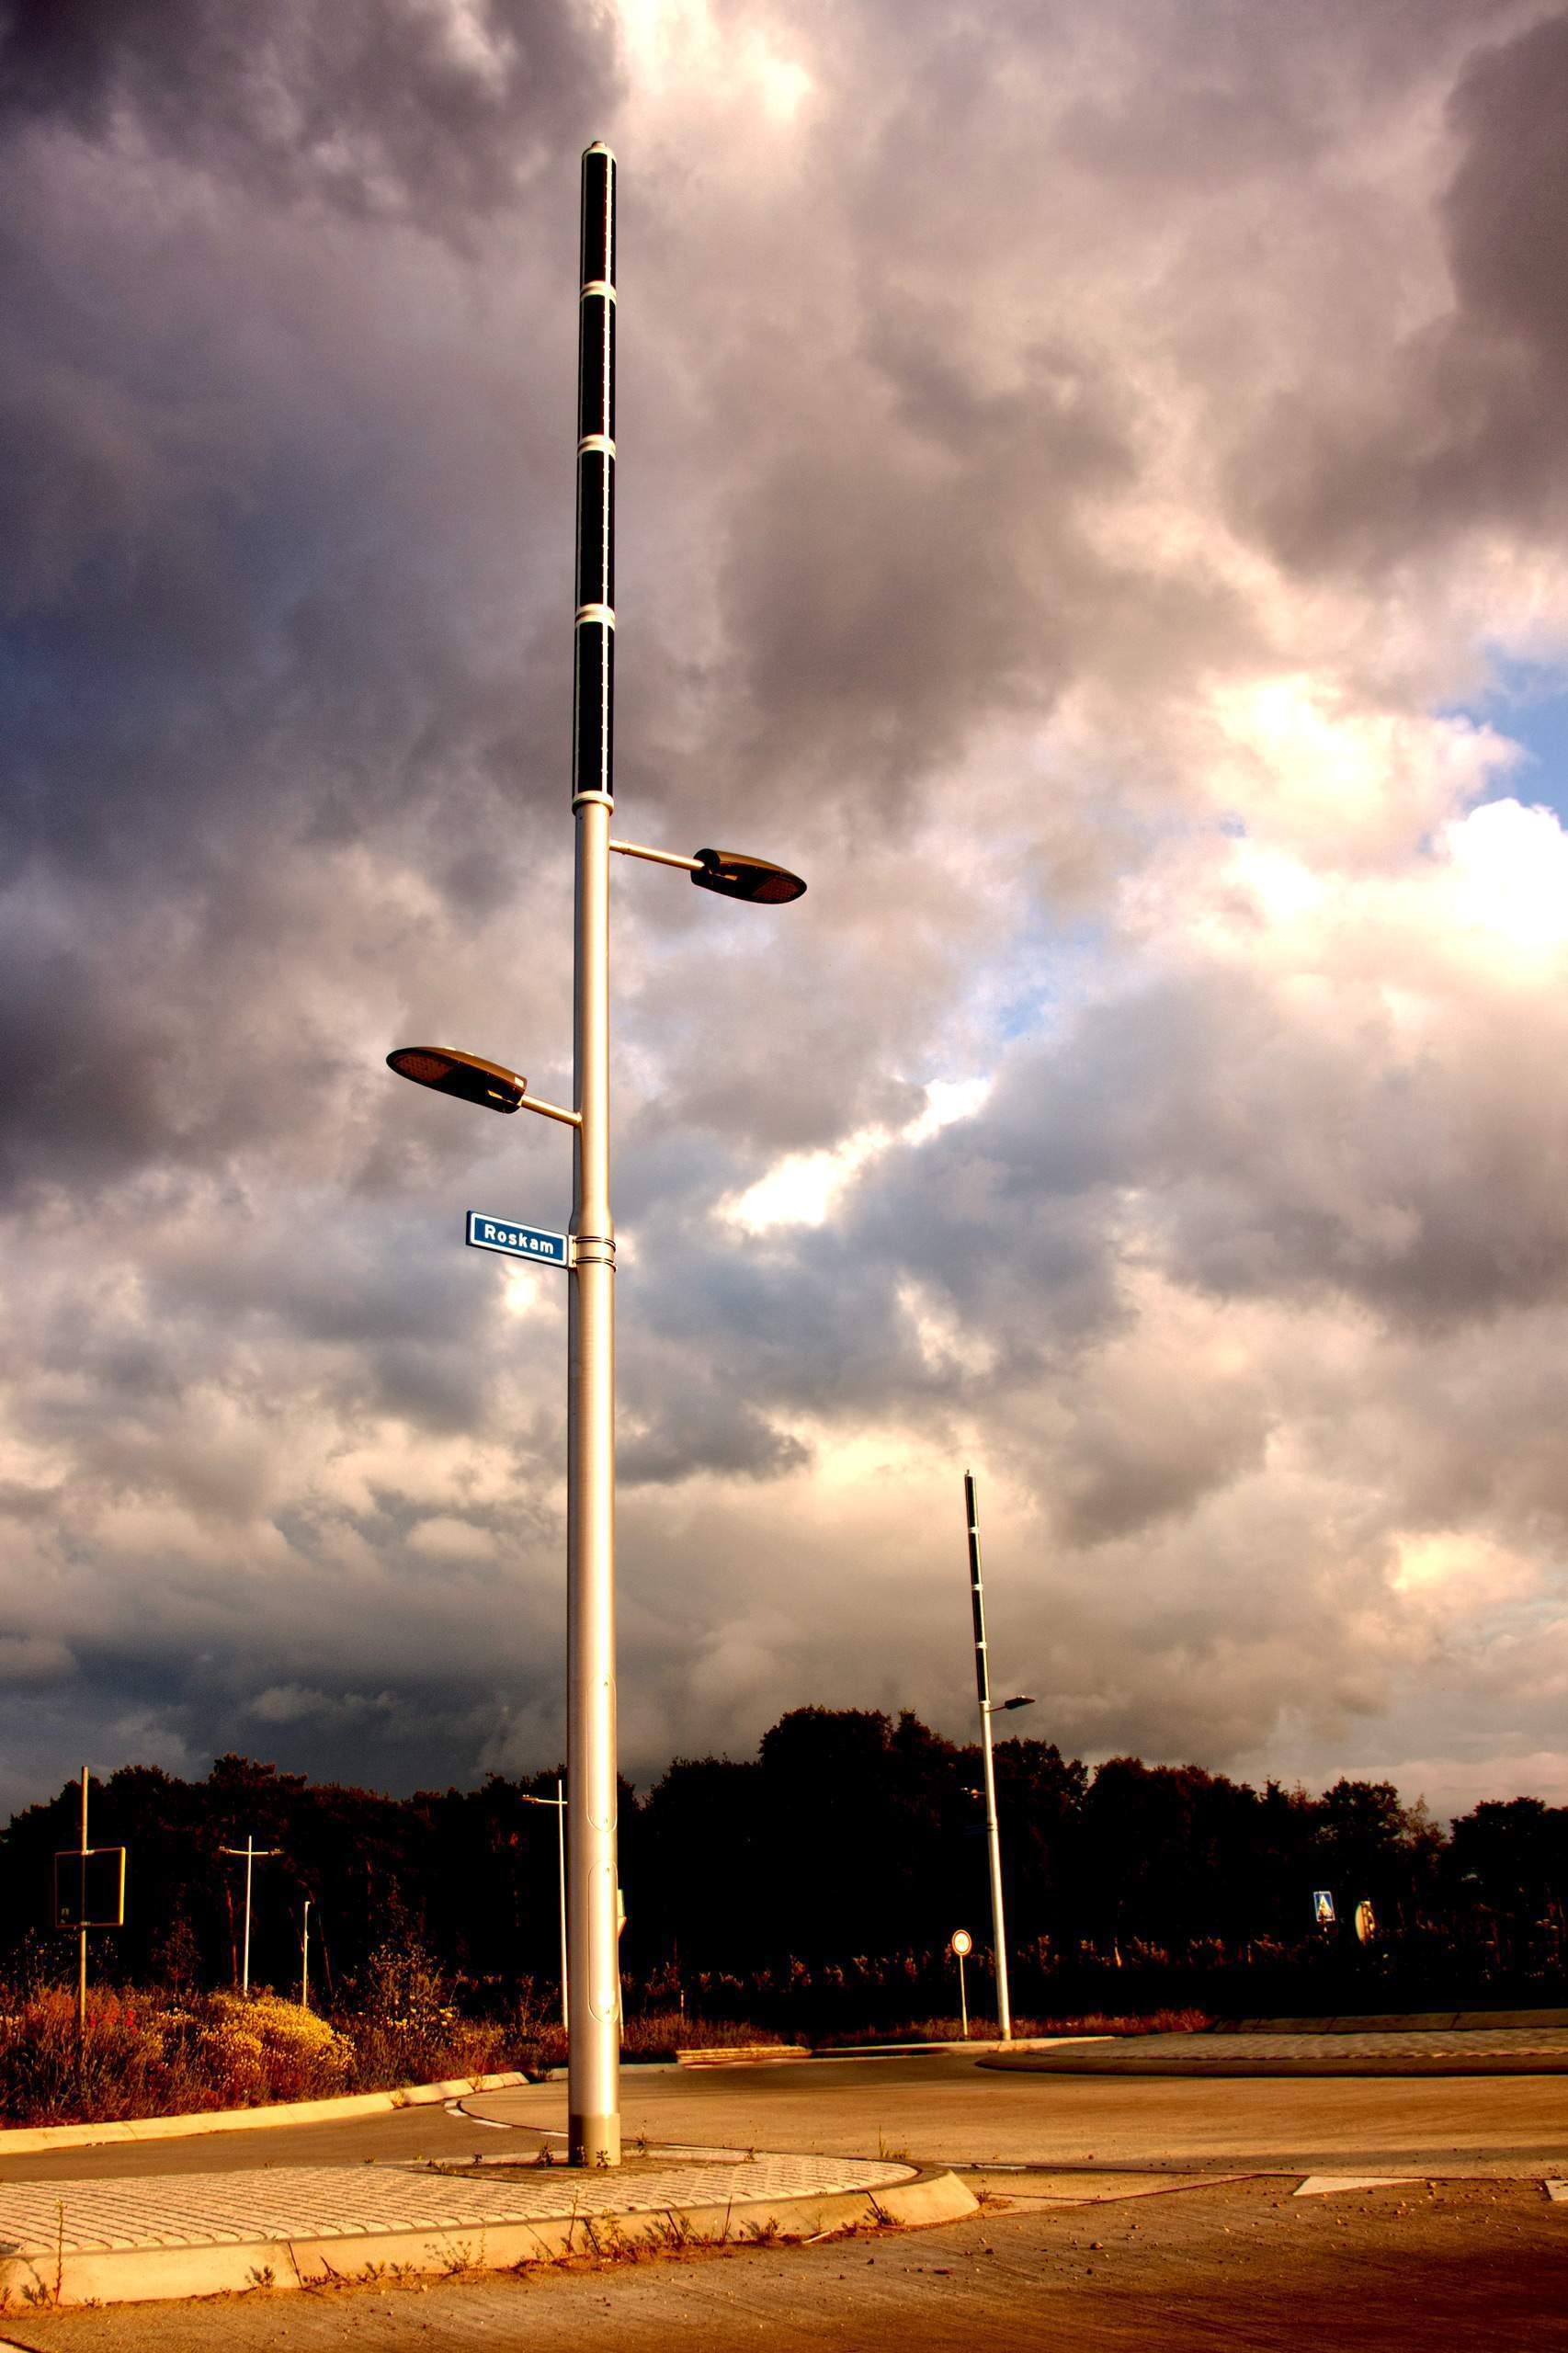 Soluxio hybrid solar lights are dark sky compliance and installed at an autonomous and sustainable roundabout